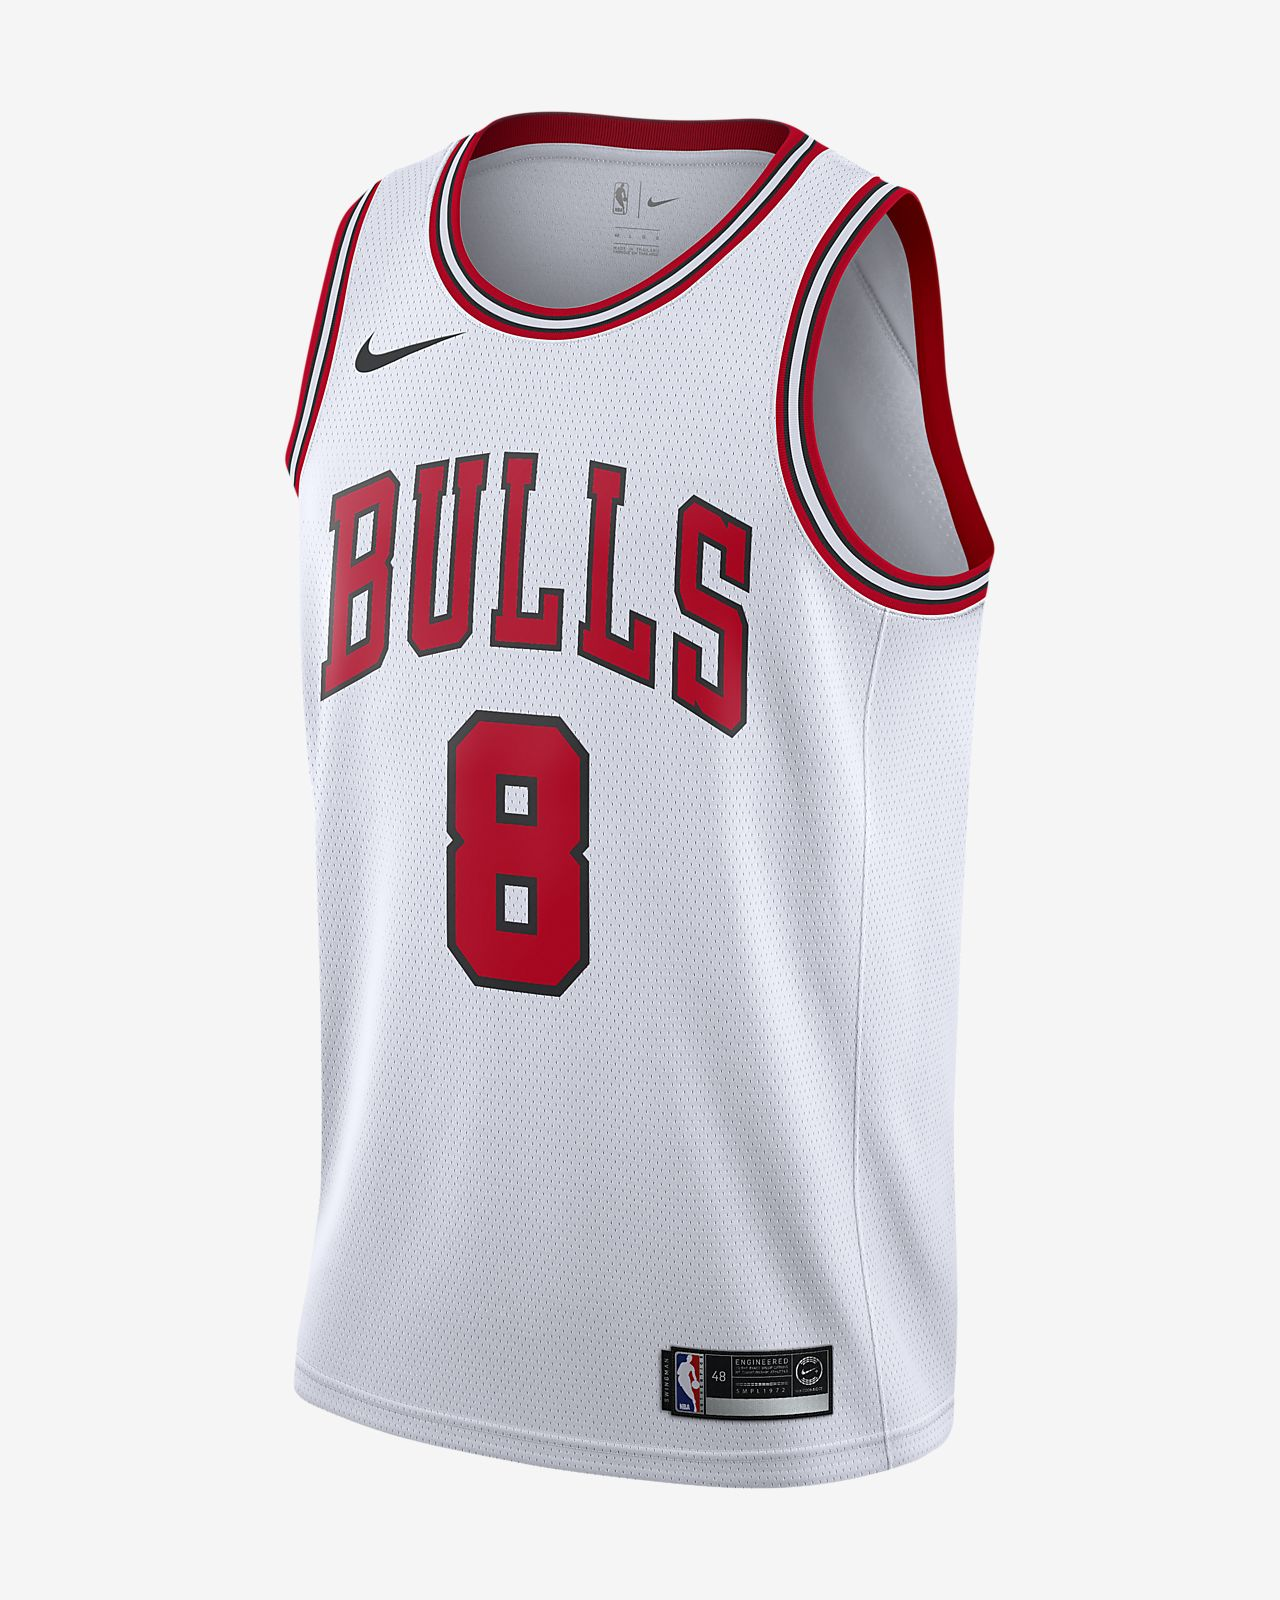 62f19f1ddc9 Men's Nike NBA Connected Jersey. Zach LaVine Association Edition Swingman  (Chicago Bulls)